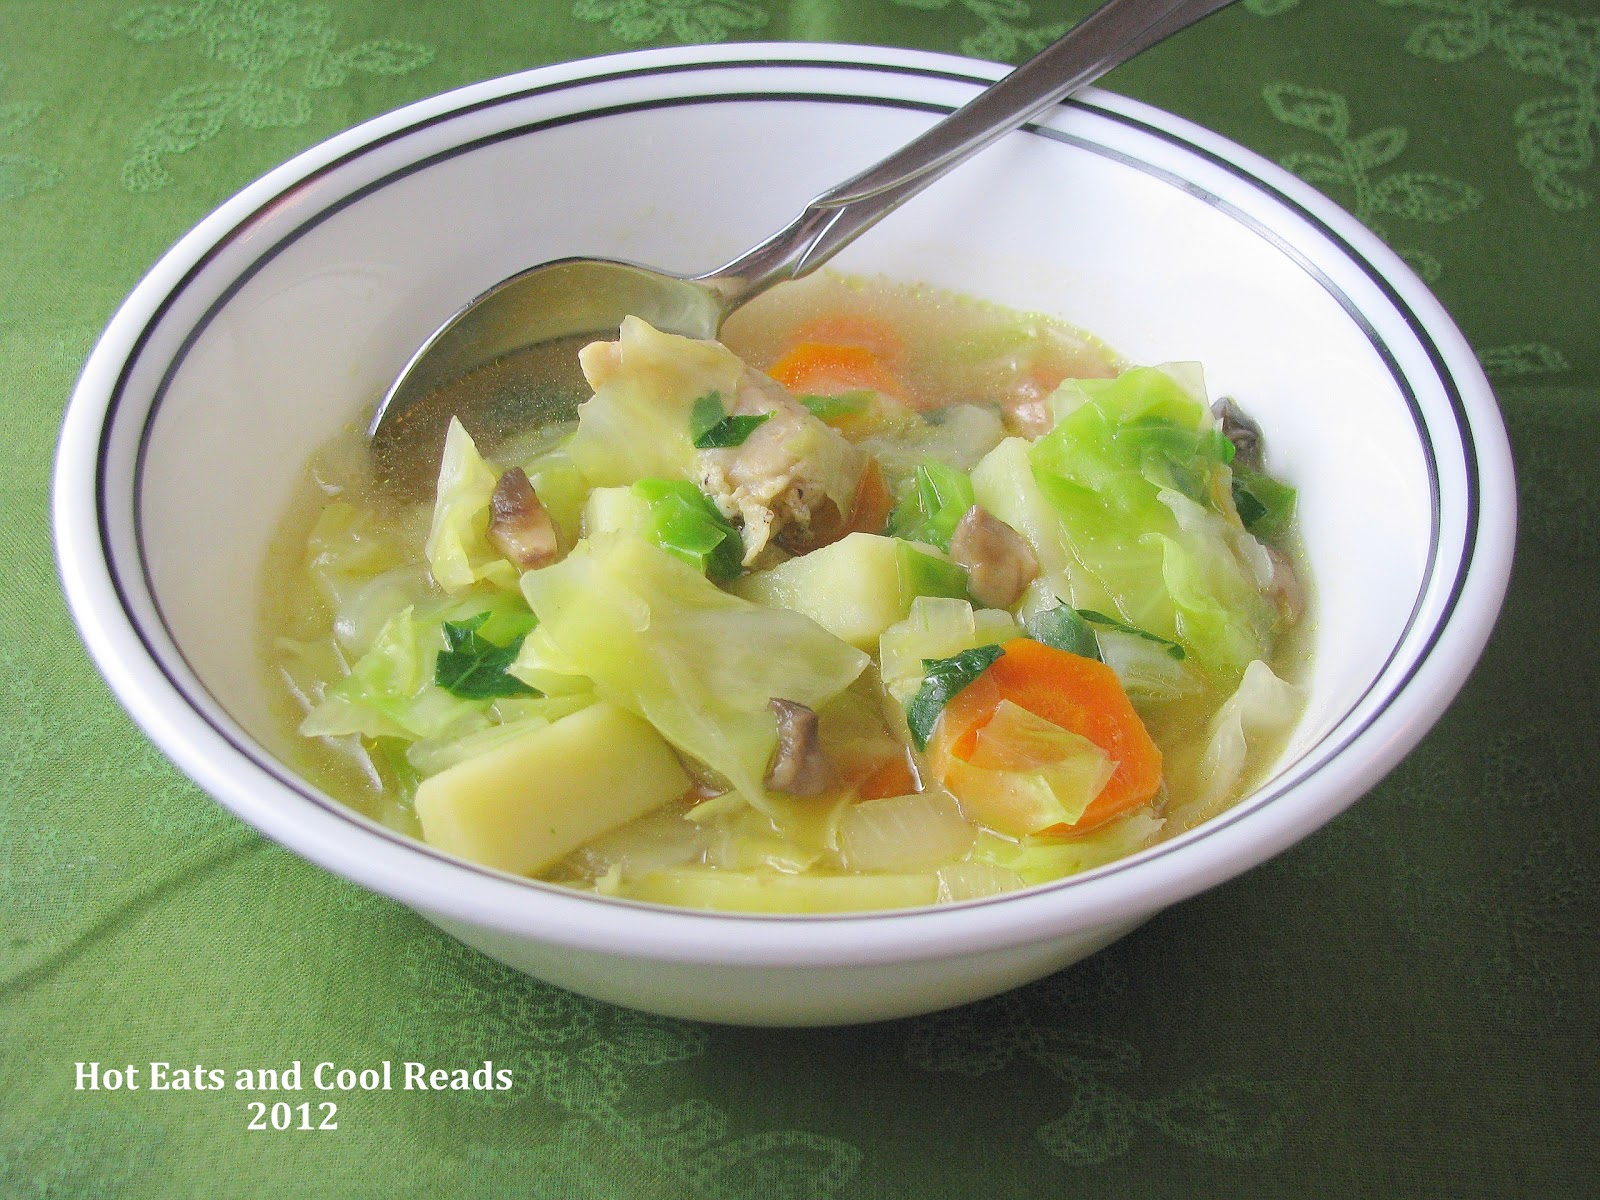 Hot eats and cool reads chicken and cabbage soup recipe chicken and cabbage soup recipe forumfinder Image collections